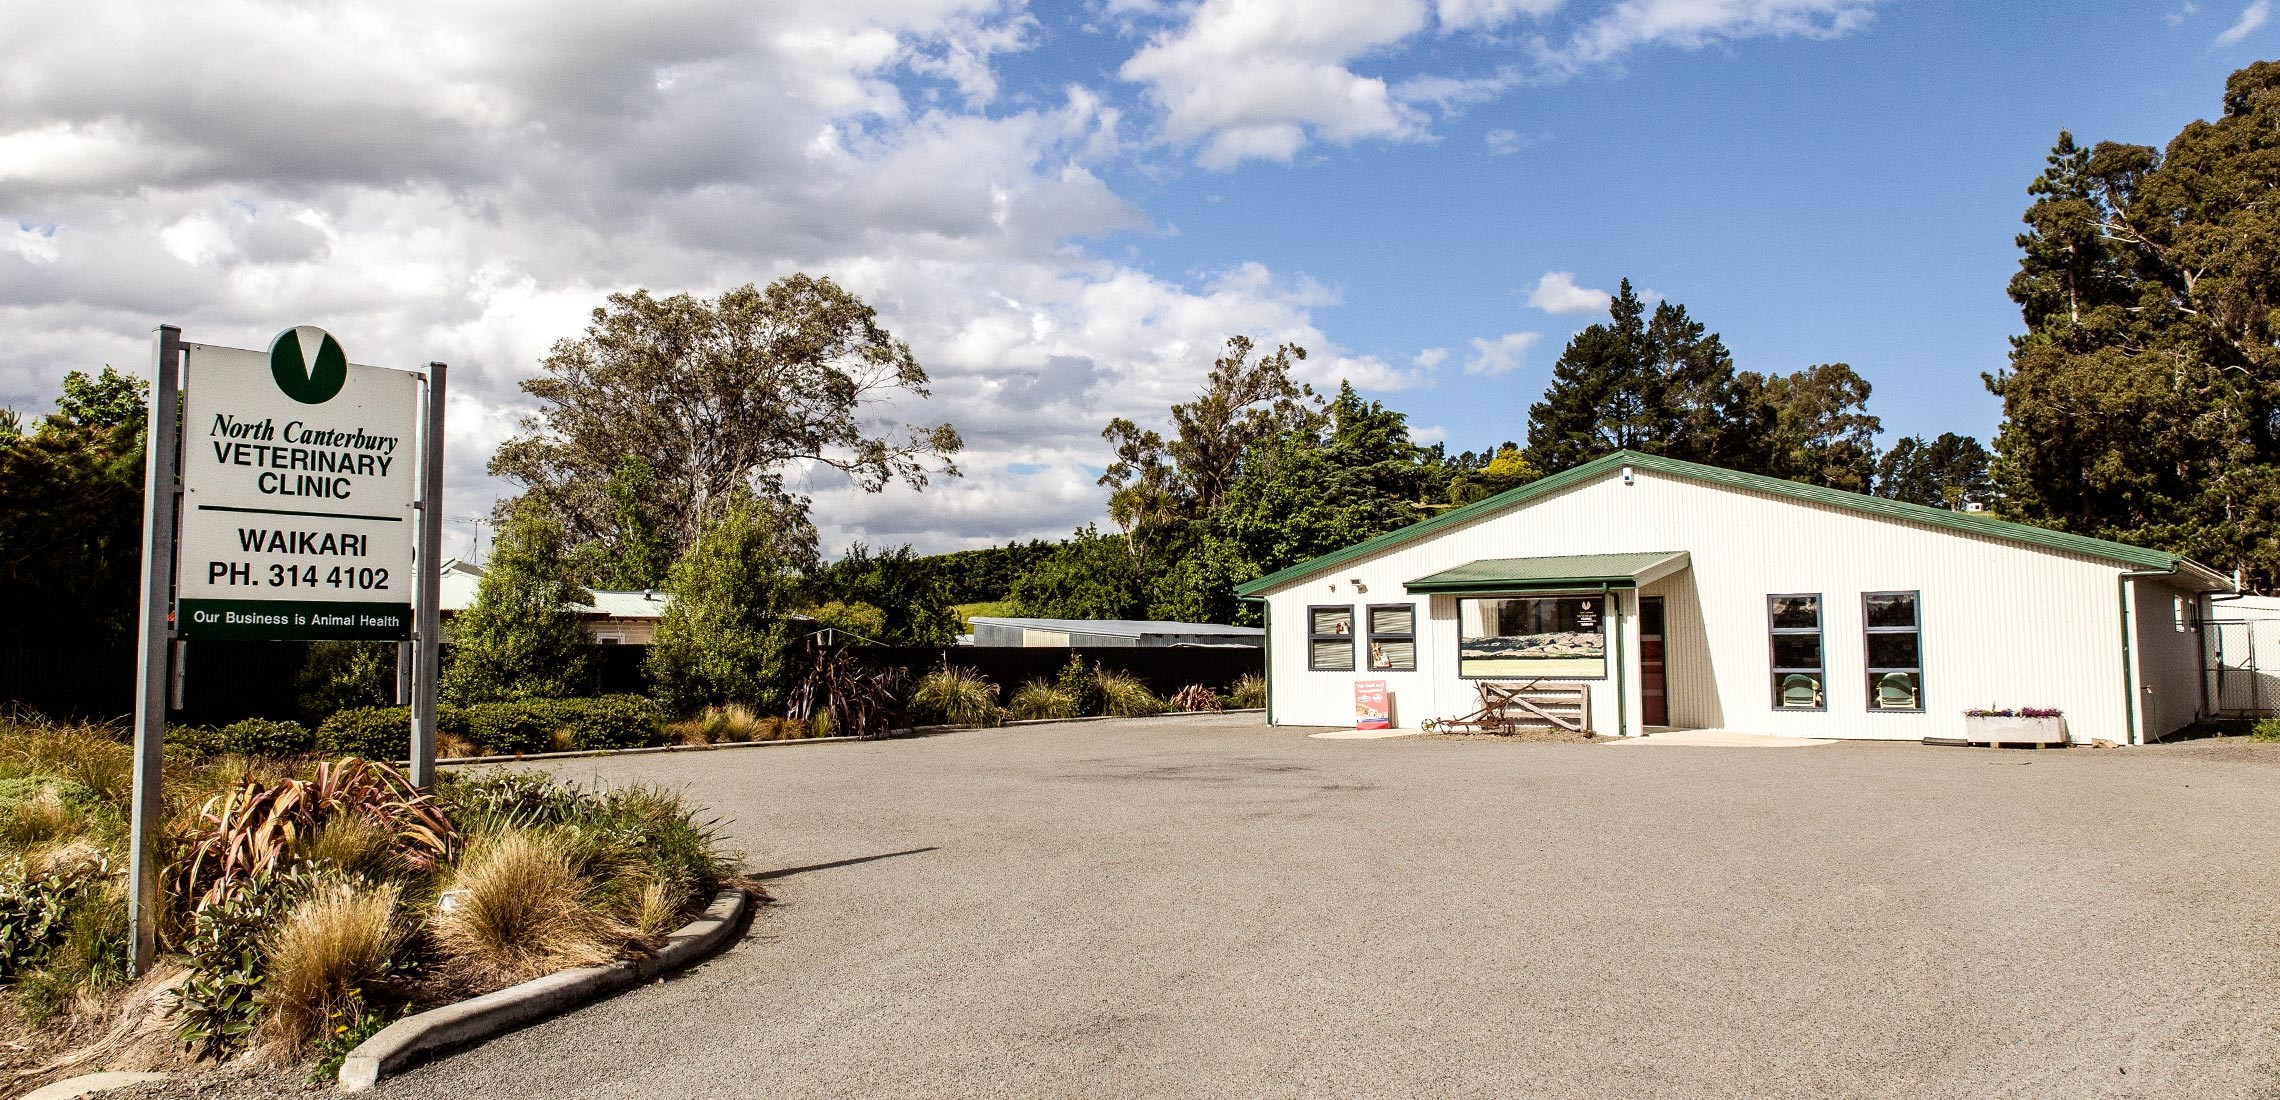 Exterior of the Waikari Vet Clinic